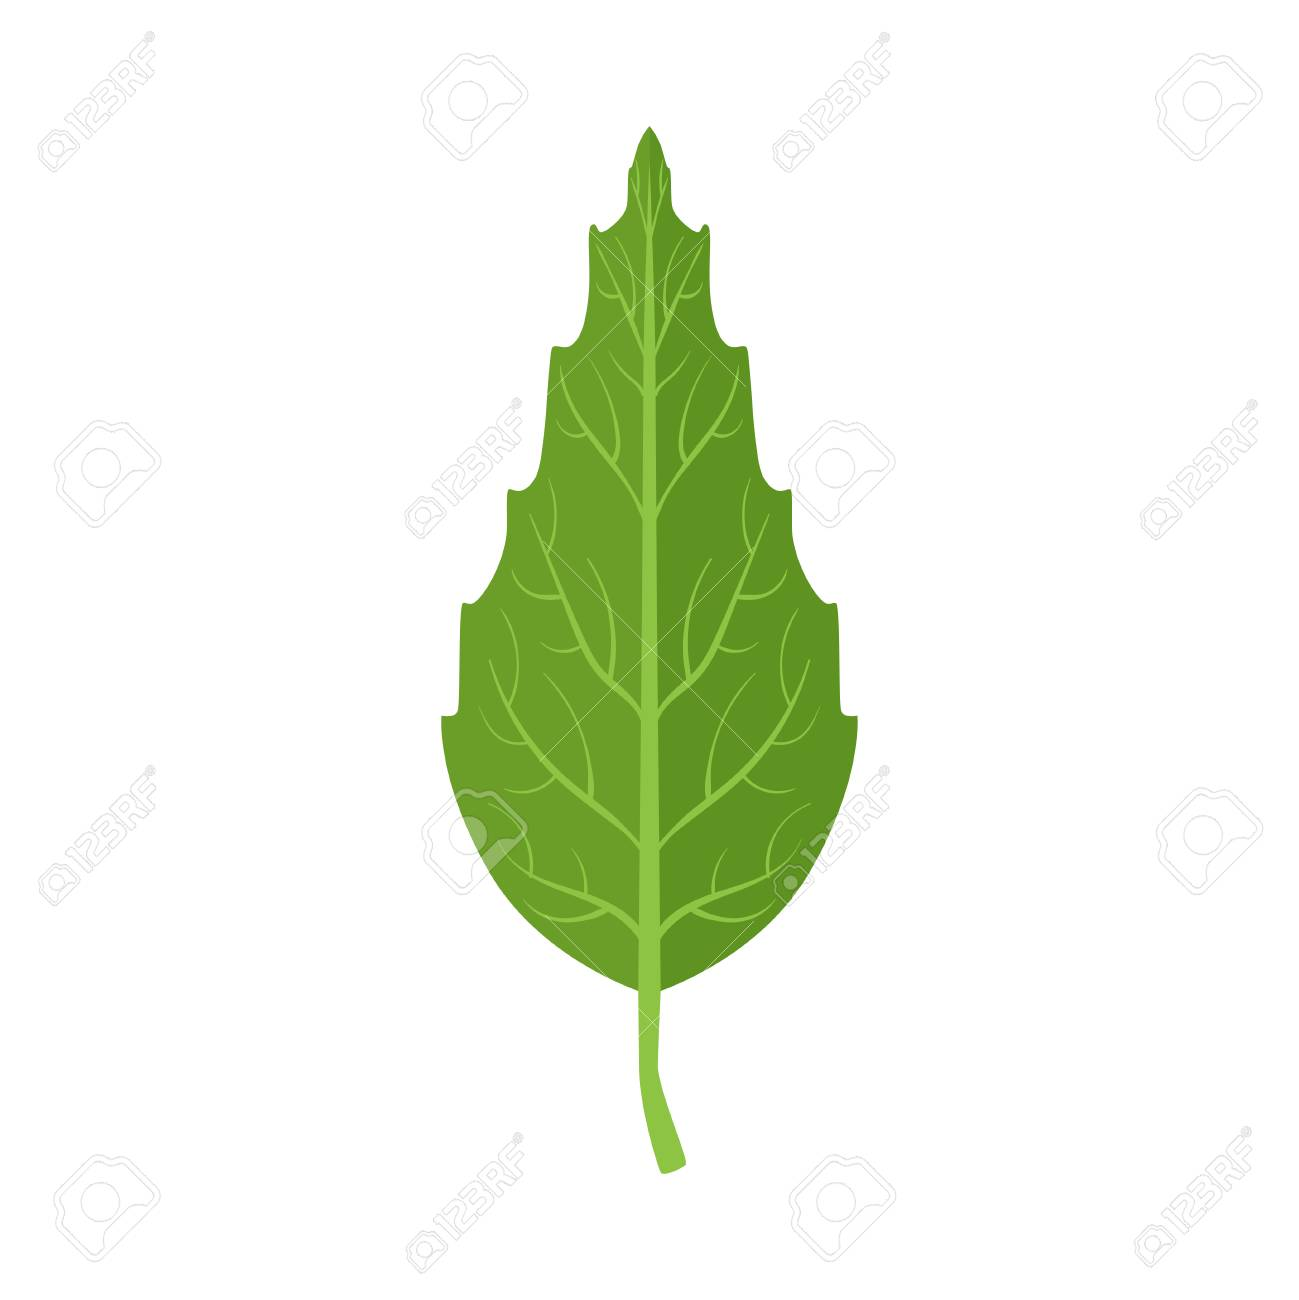 Beech tree green leaf vector Illustration on a white background - 85203787